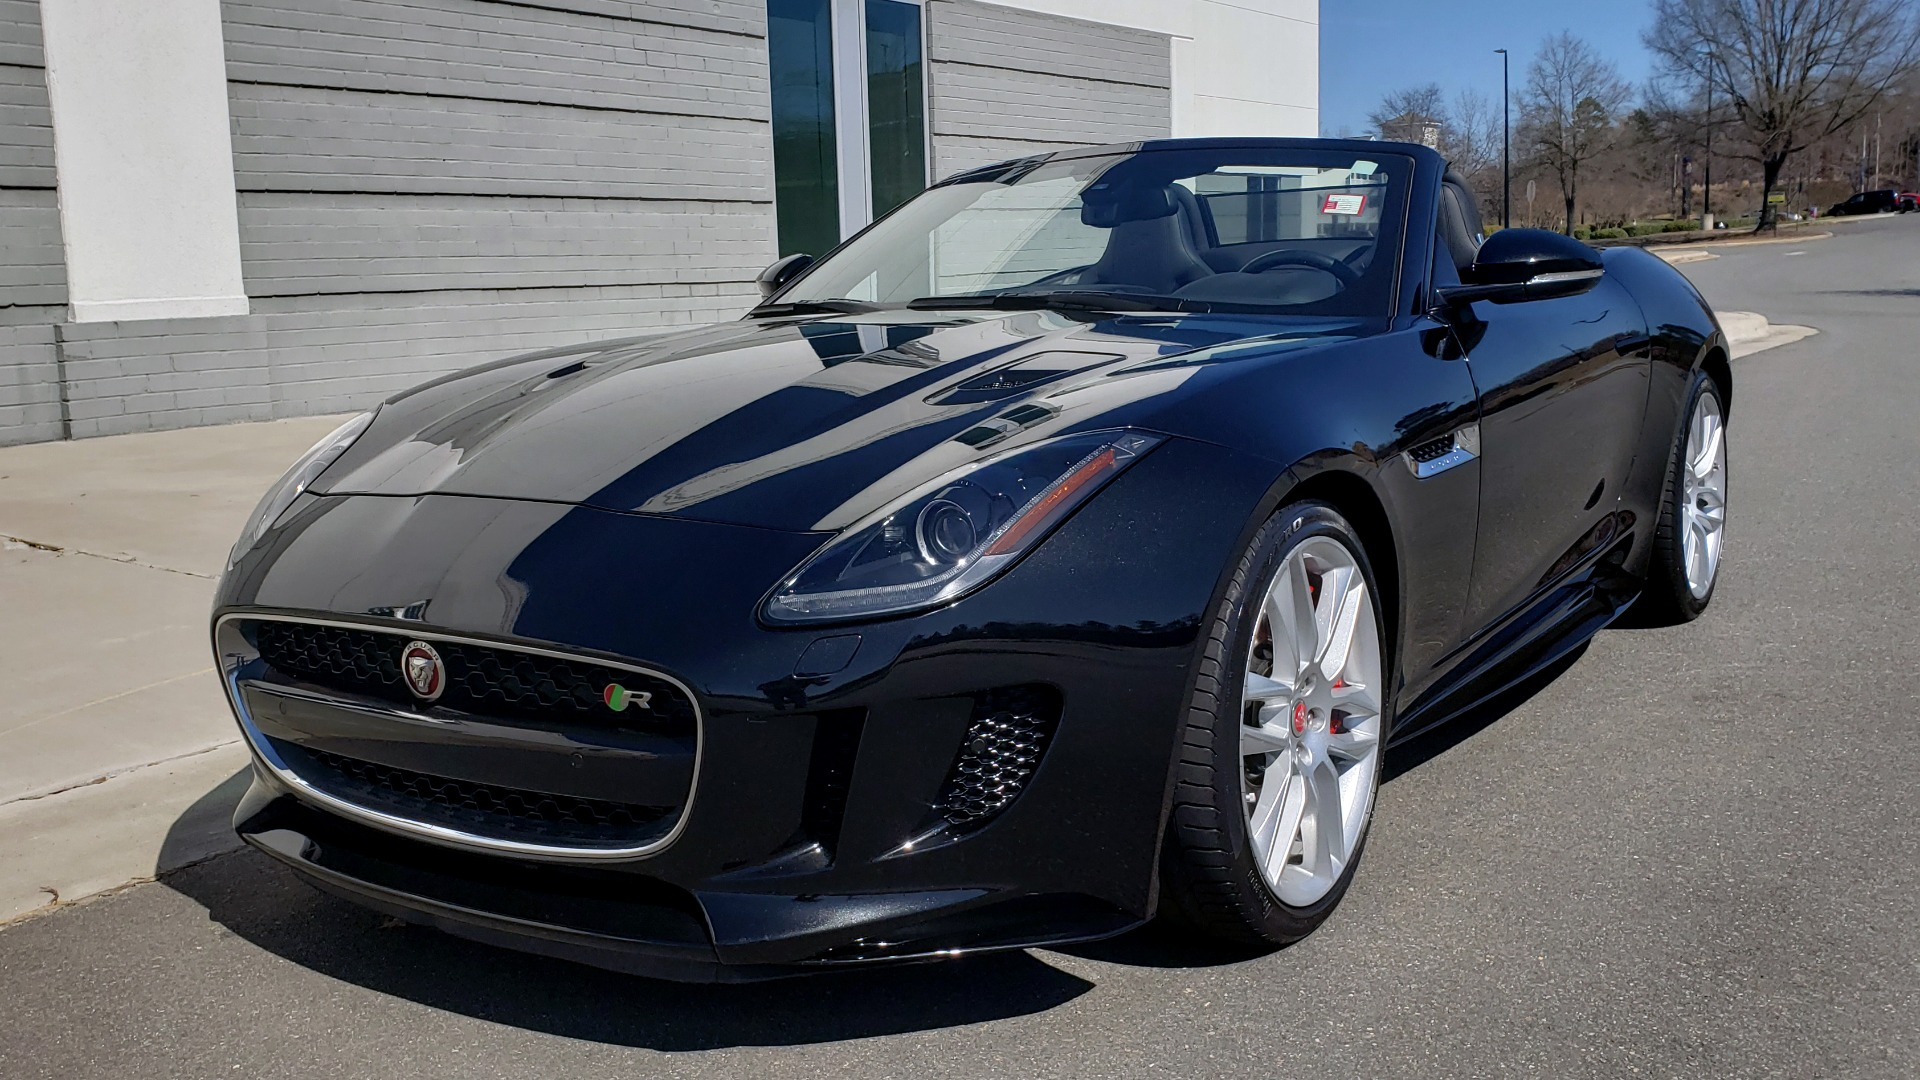 Used 2016 Jaguar F-TYPE R CONVERTIBLE / SC 5.0L 550HP / VISION PACK 3 / BSM / REARVIEW for sale $63,000 at Formula Imports in Charlotte NC 28227 1